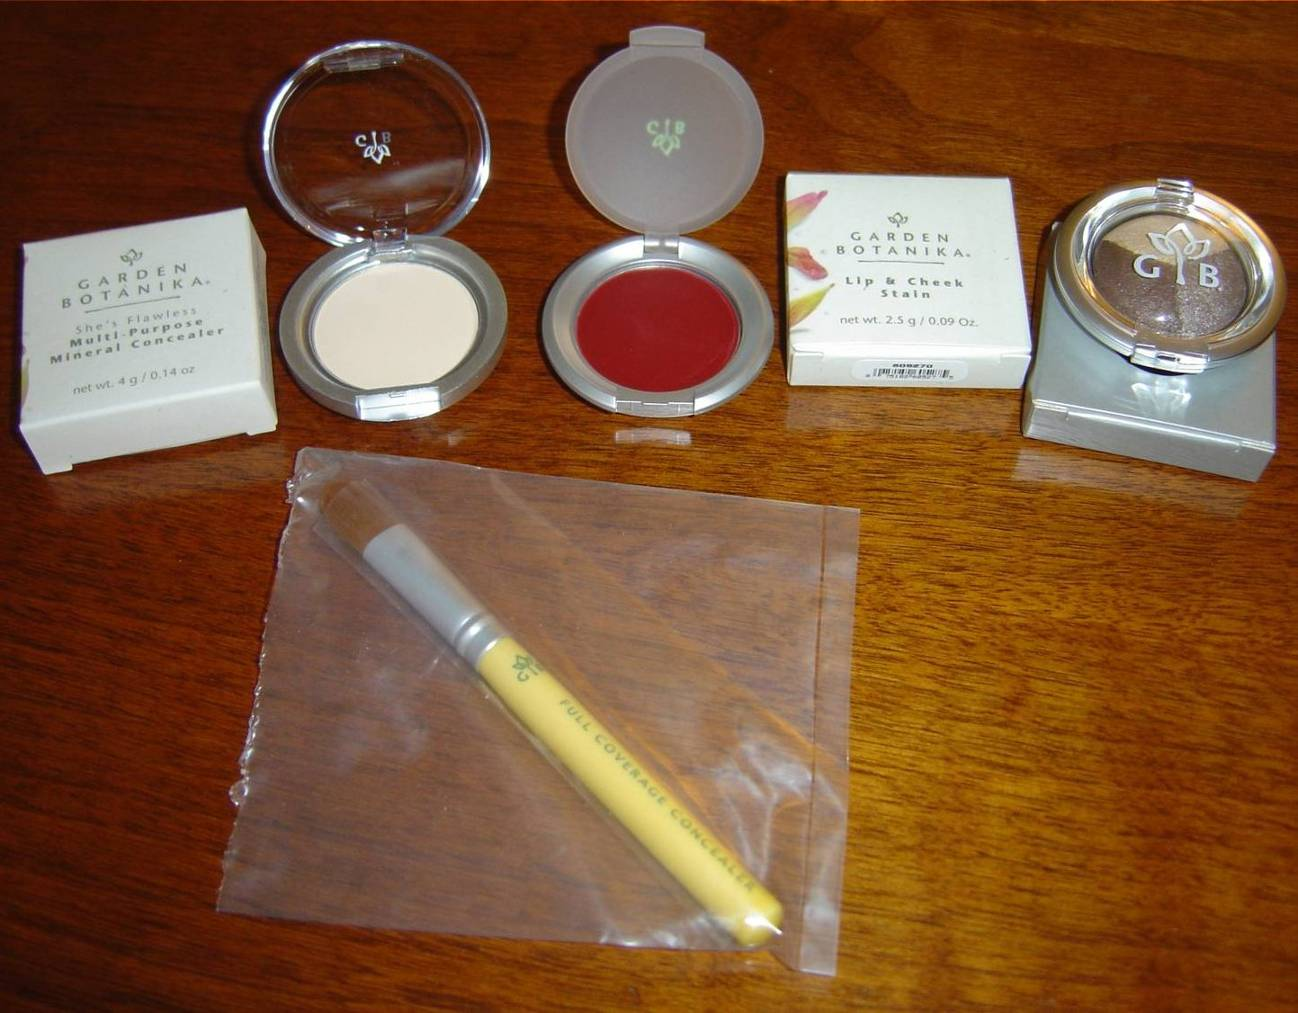 Garden Botanika Mineral Makeup concealer, concealer brush, lip & cheek stain and mineral eyeshadows.jpeg